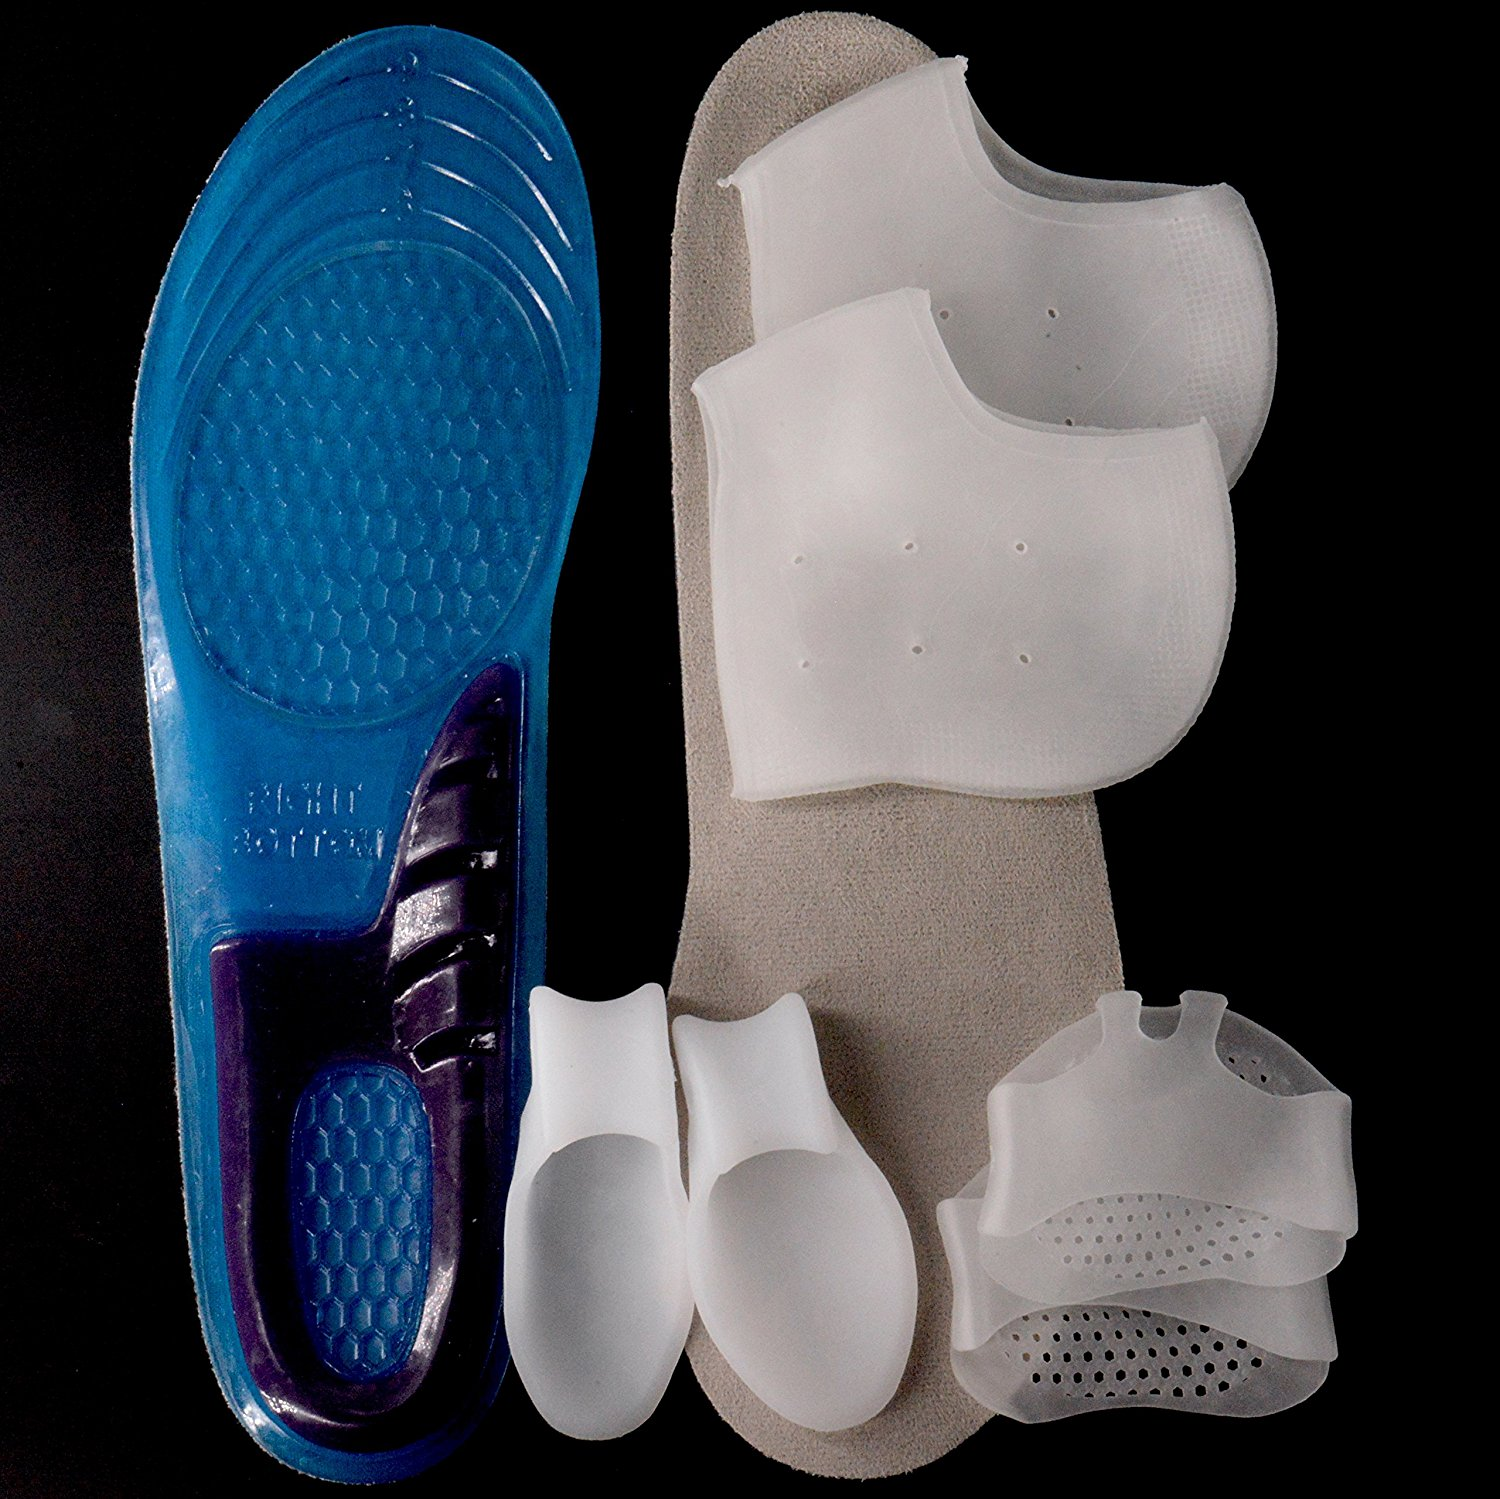 Men's Work Boot & Shoe Insert [Medium] (1 Pair) + Toe corrector (1 Pair) + Forefoot Pad (1 Pair) + Silicone Heel Cover (1 Pair) - (Men's Sizes 6 to 8) - Cut to fit.